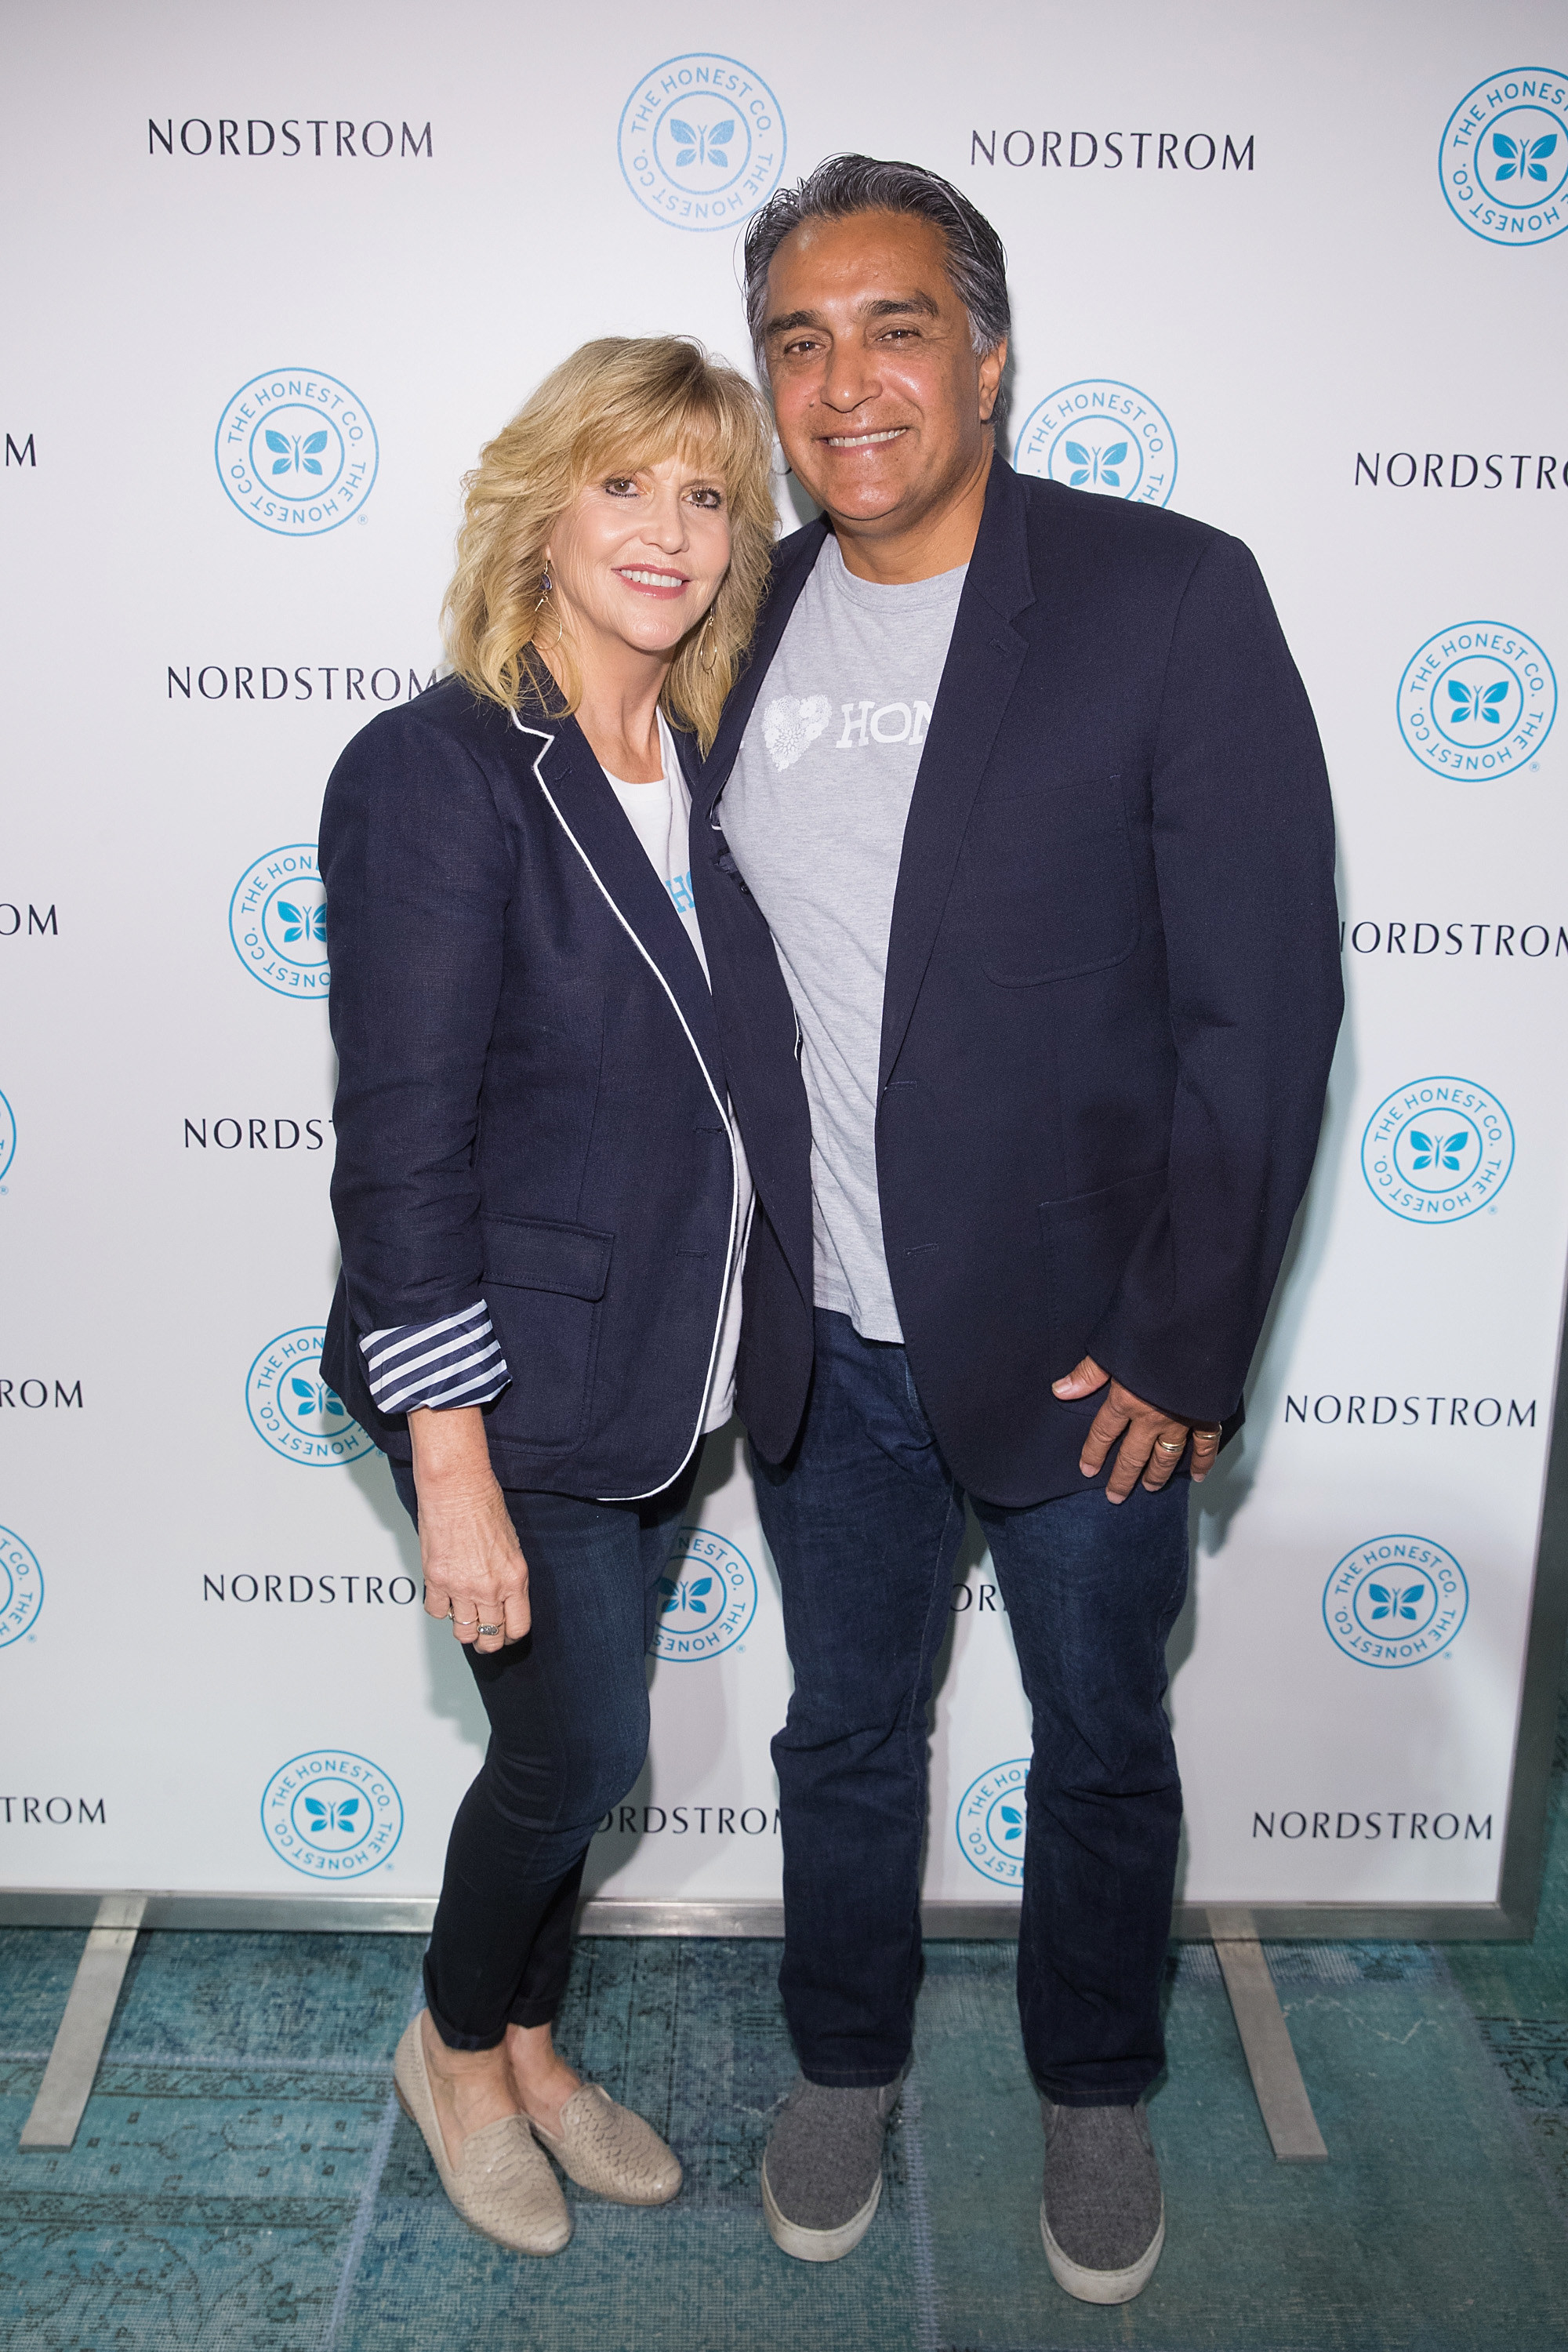 Jessica Alba's parents Catherine and Mark at an event for her company The Honest Company